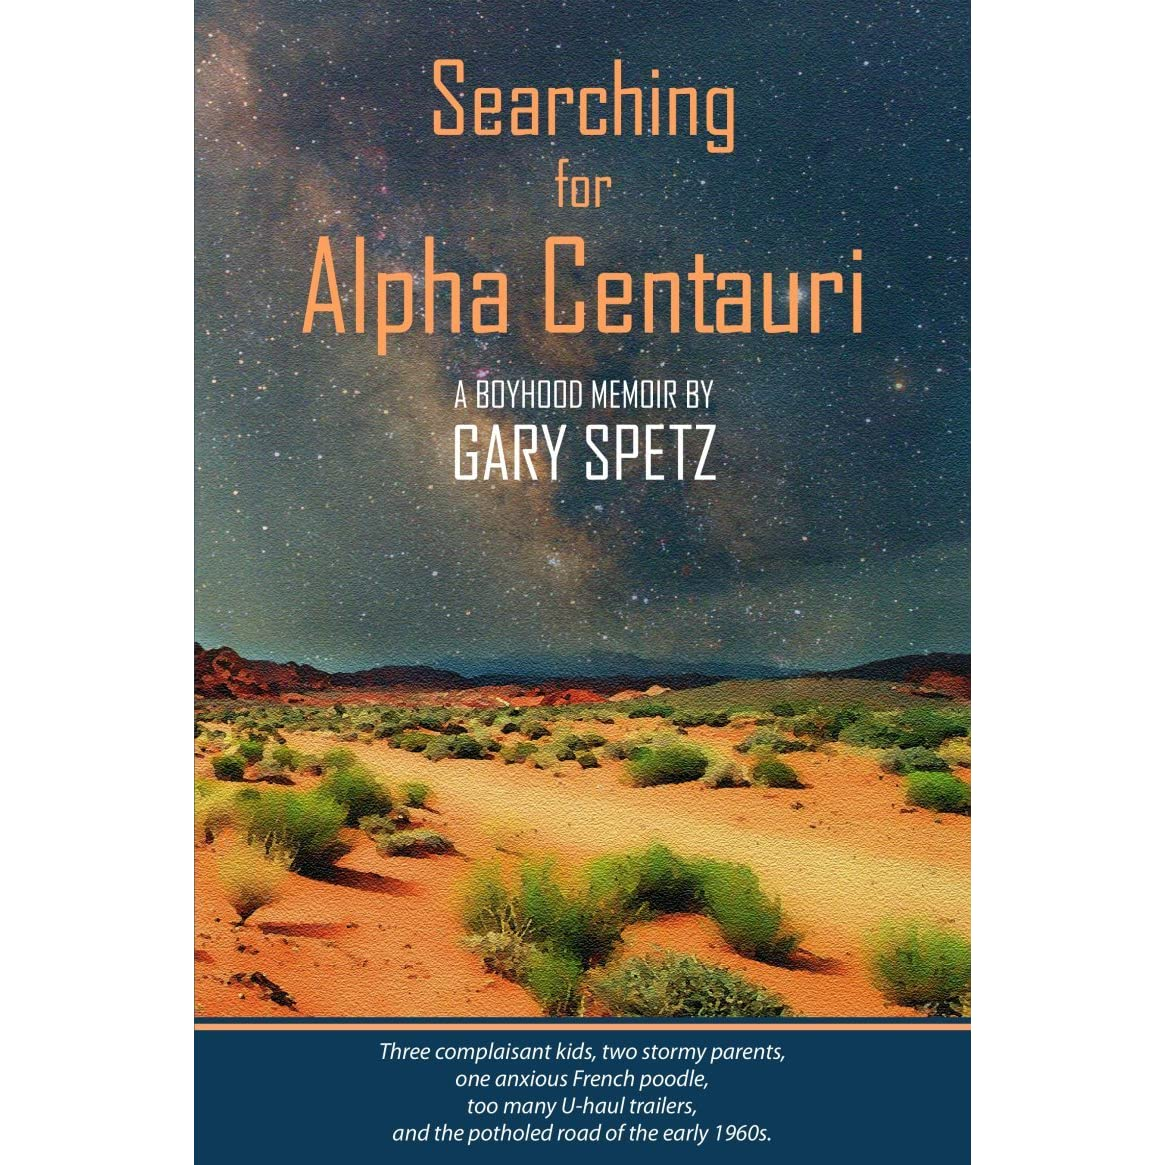 Book giveaway for Searching for Alpha Centauri: A Boyhood ...